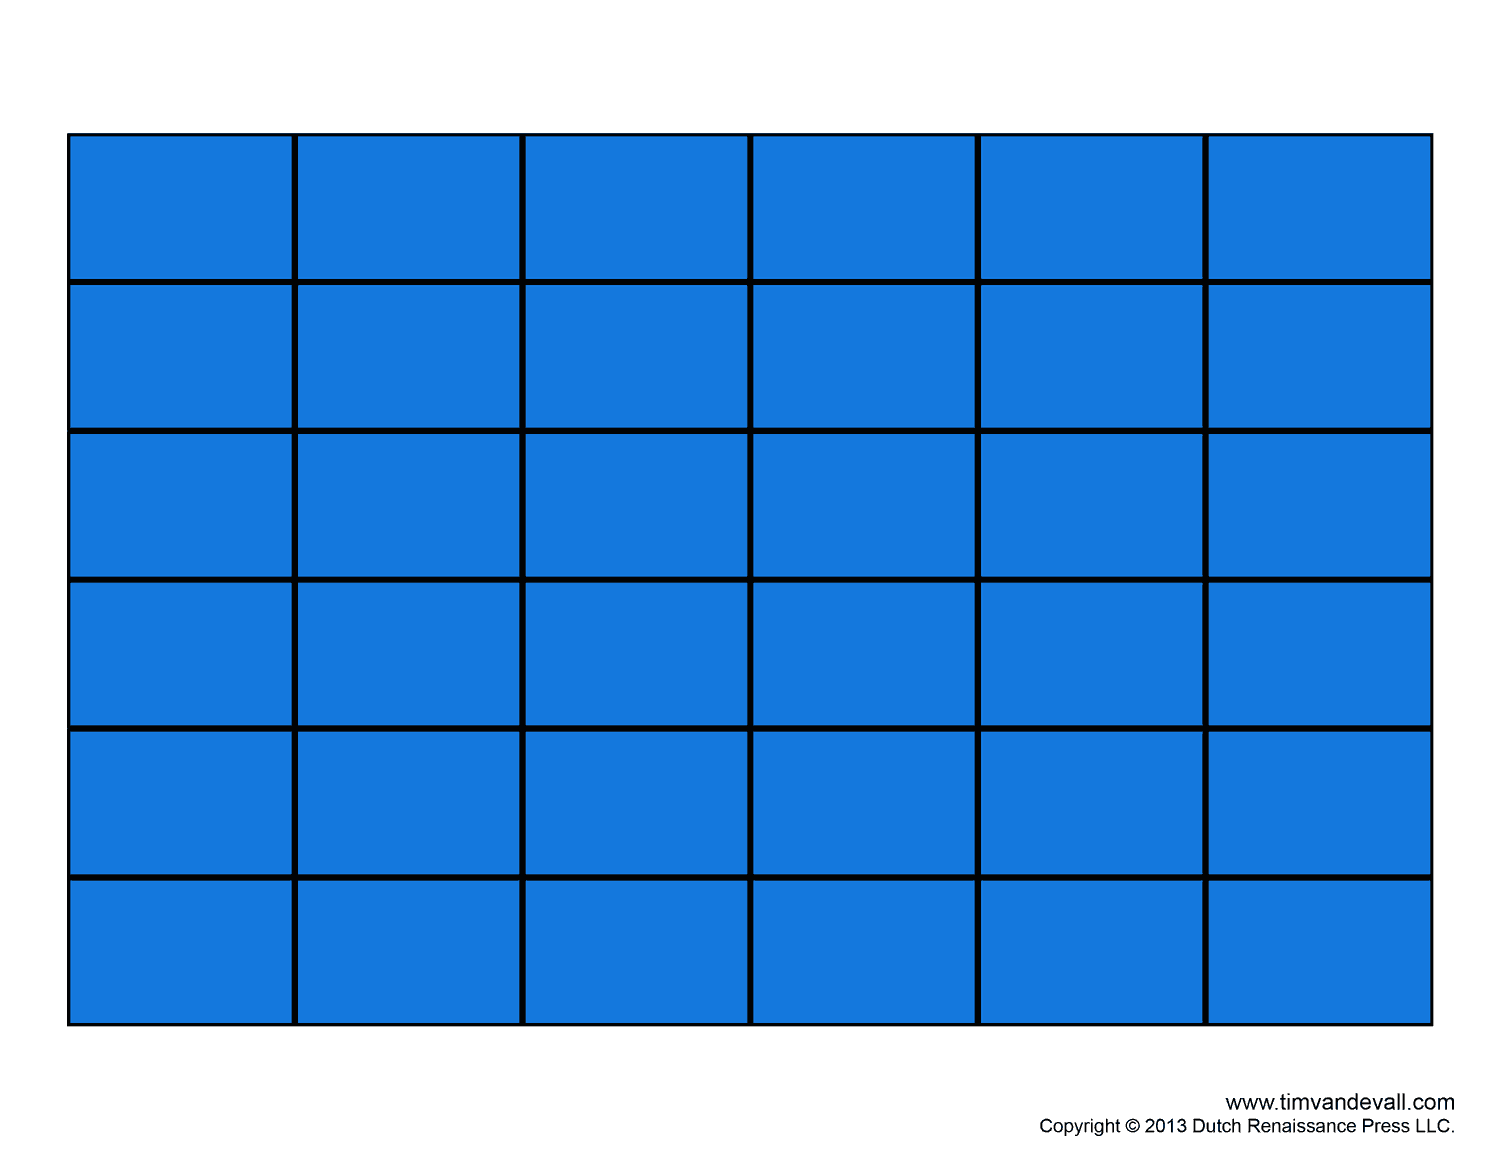 Blank Jeopardy Template Blank jeopardy template